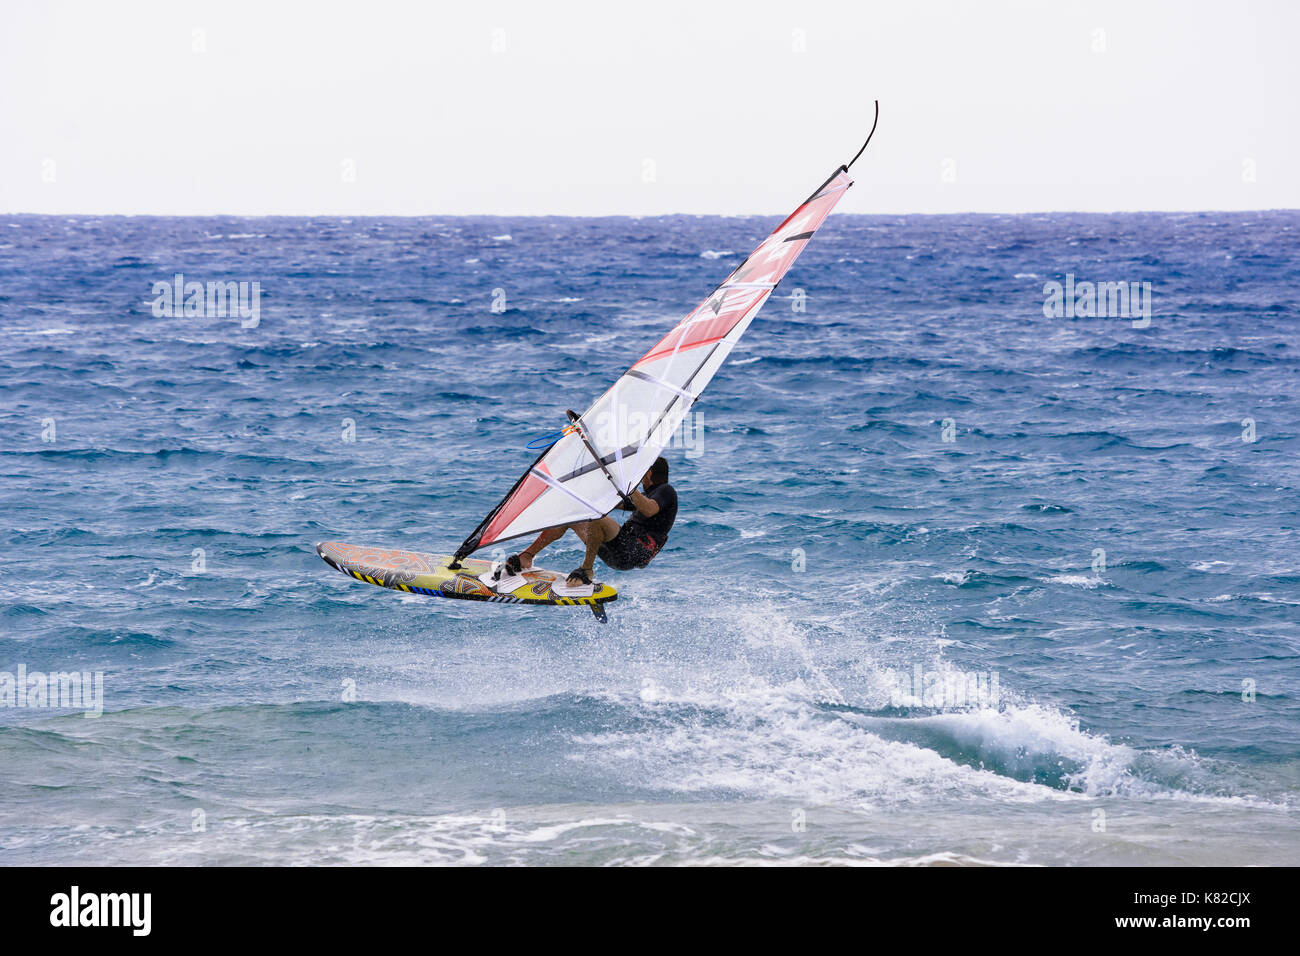 windsurfer that drives its windsurfing speed through the sparkling waves of the Ligurian Sea, in Mediterranean Sea - Stock Image